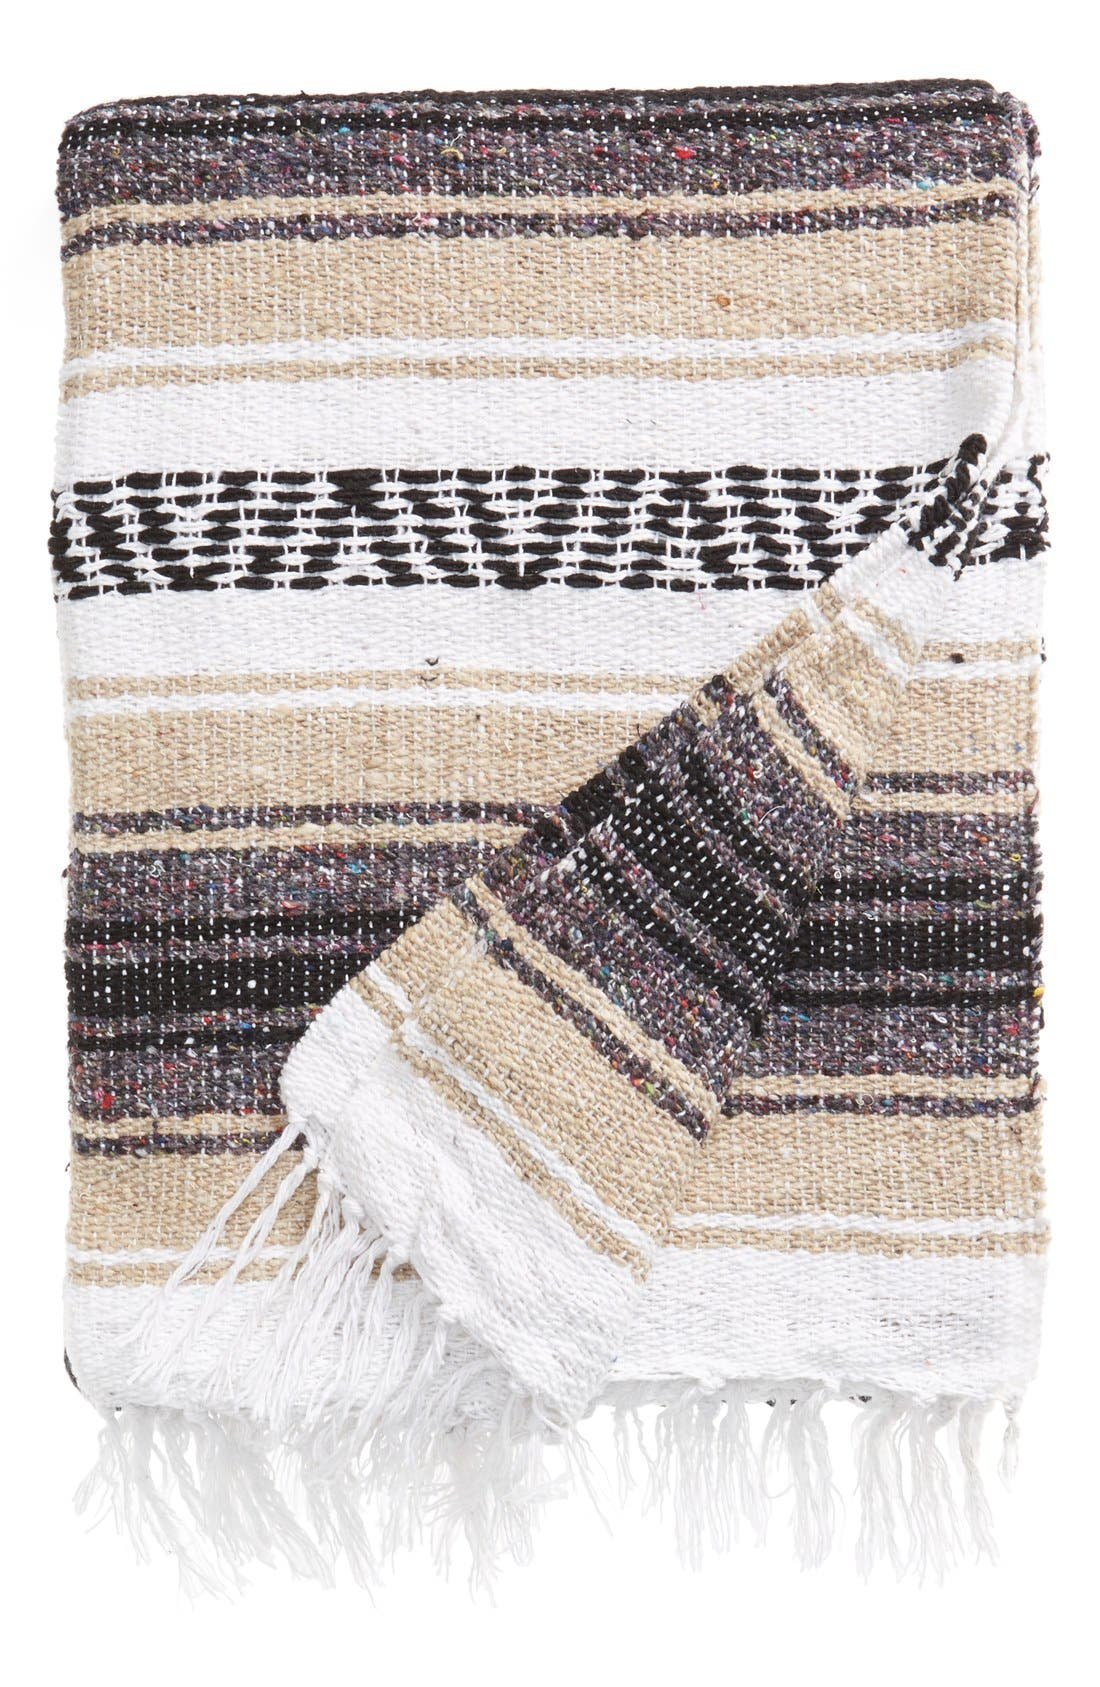 Main Image - Sercal 'Economy' Mexican Blanket